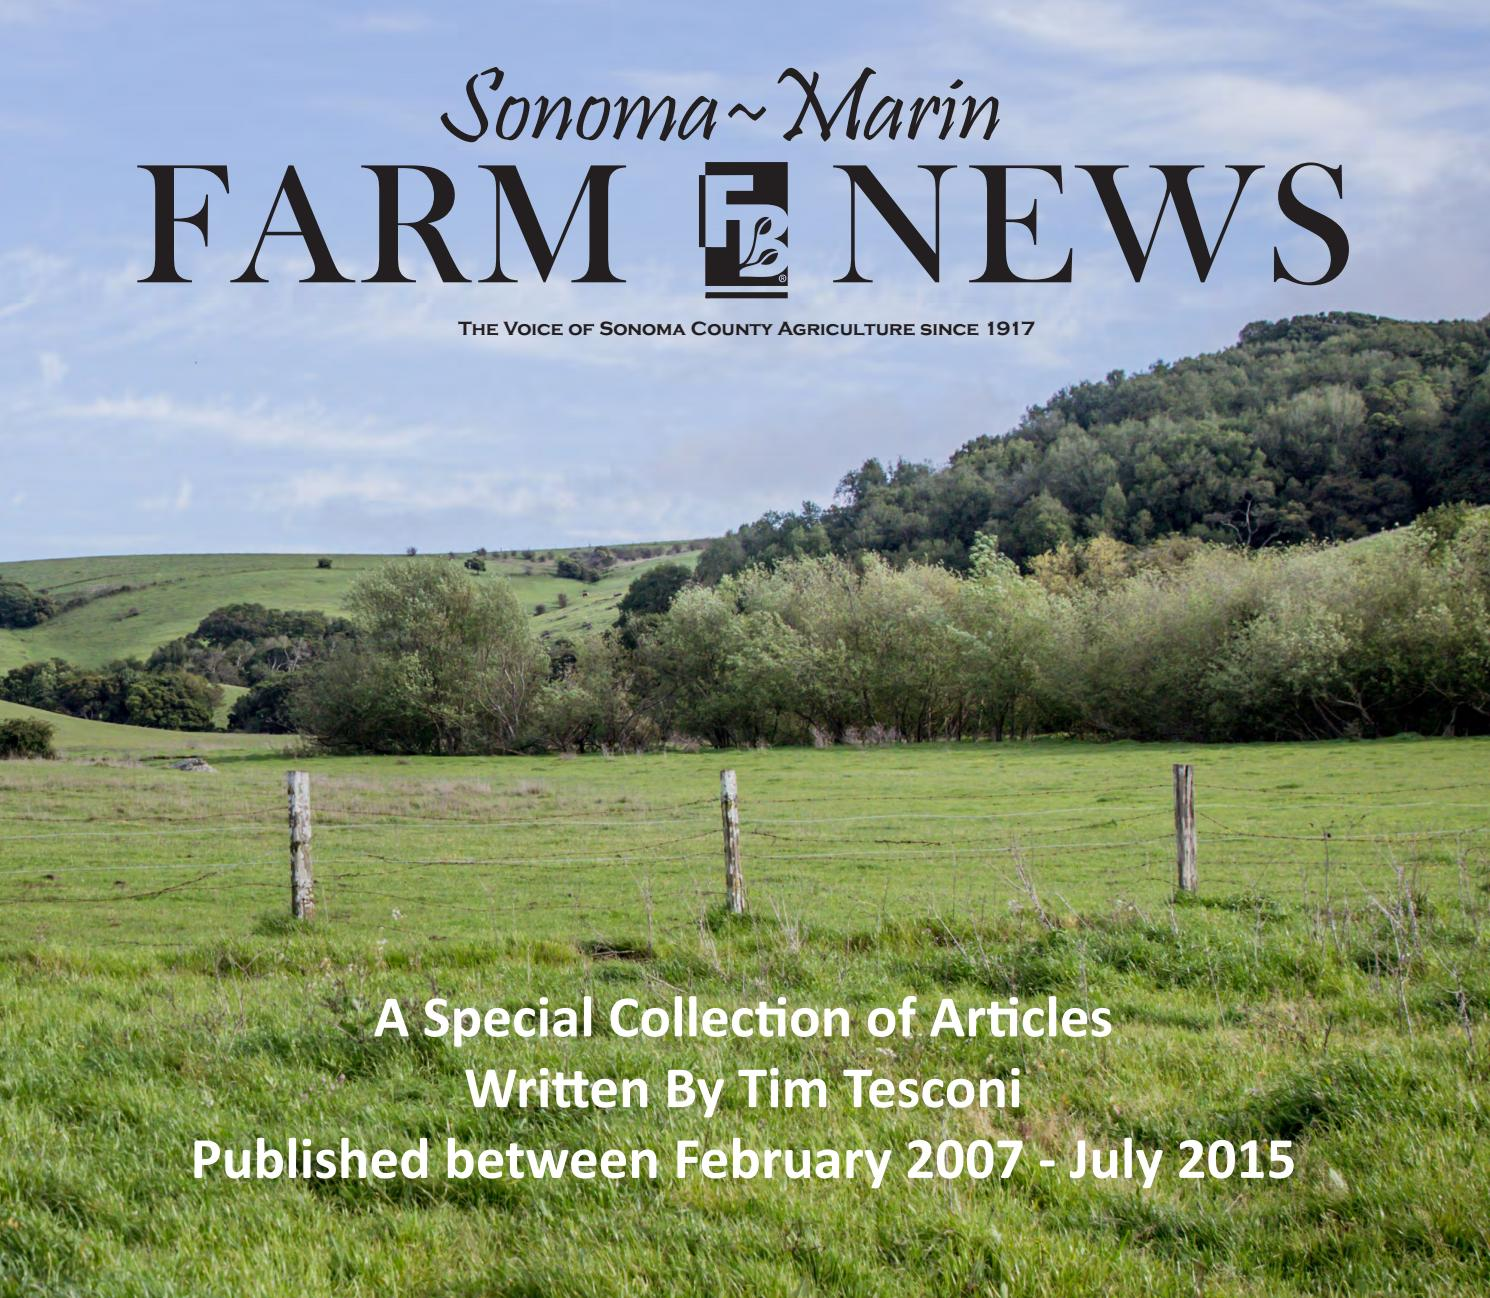 Sonoma marin farm news tim tesconi book by steve knudsen issuu aiddatafo Image collections